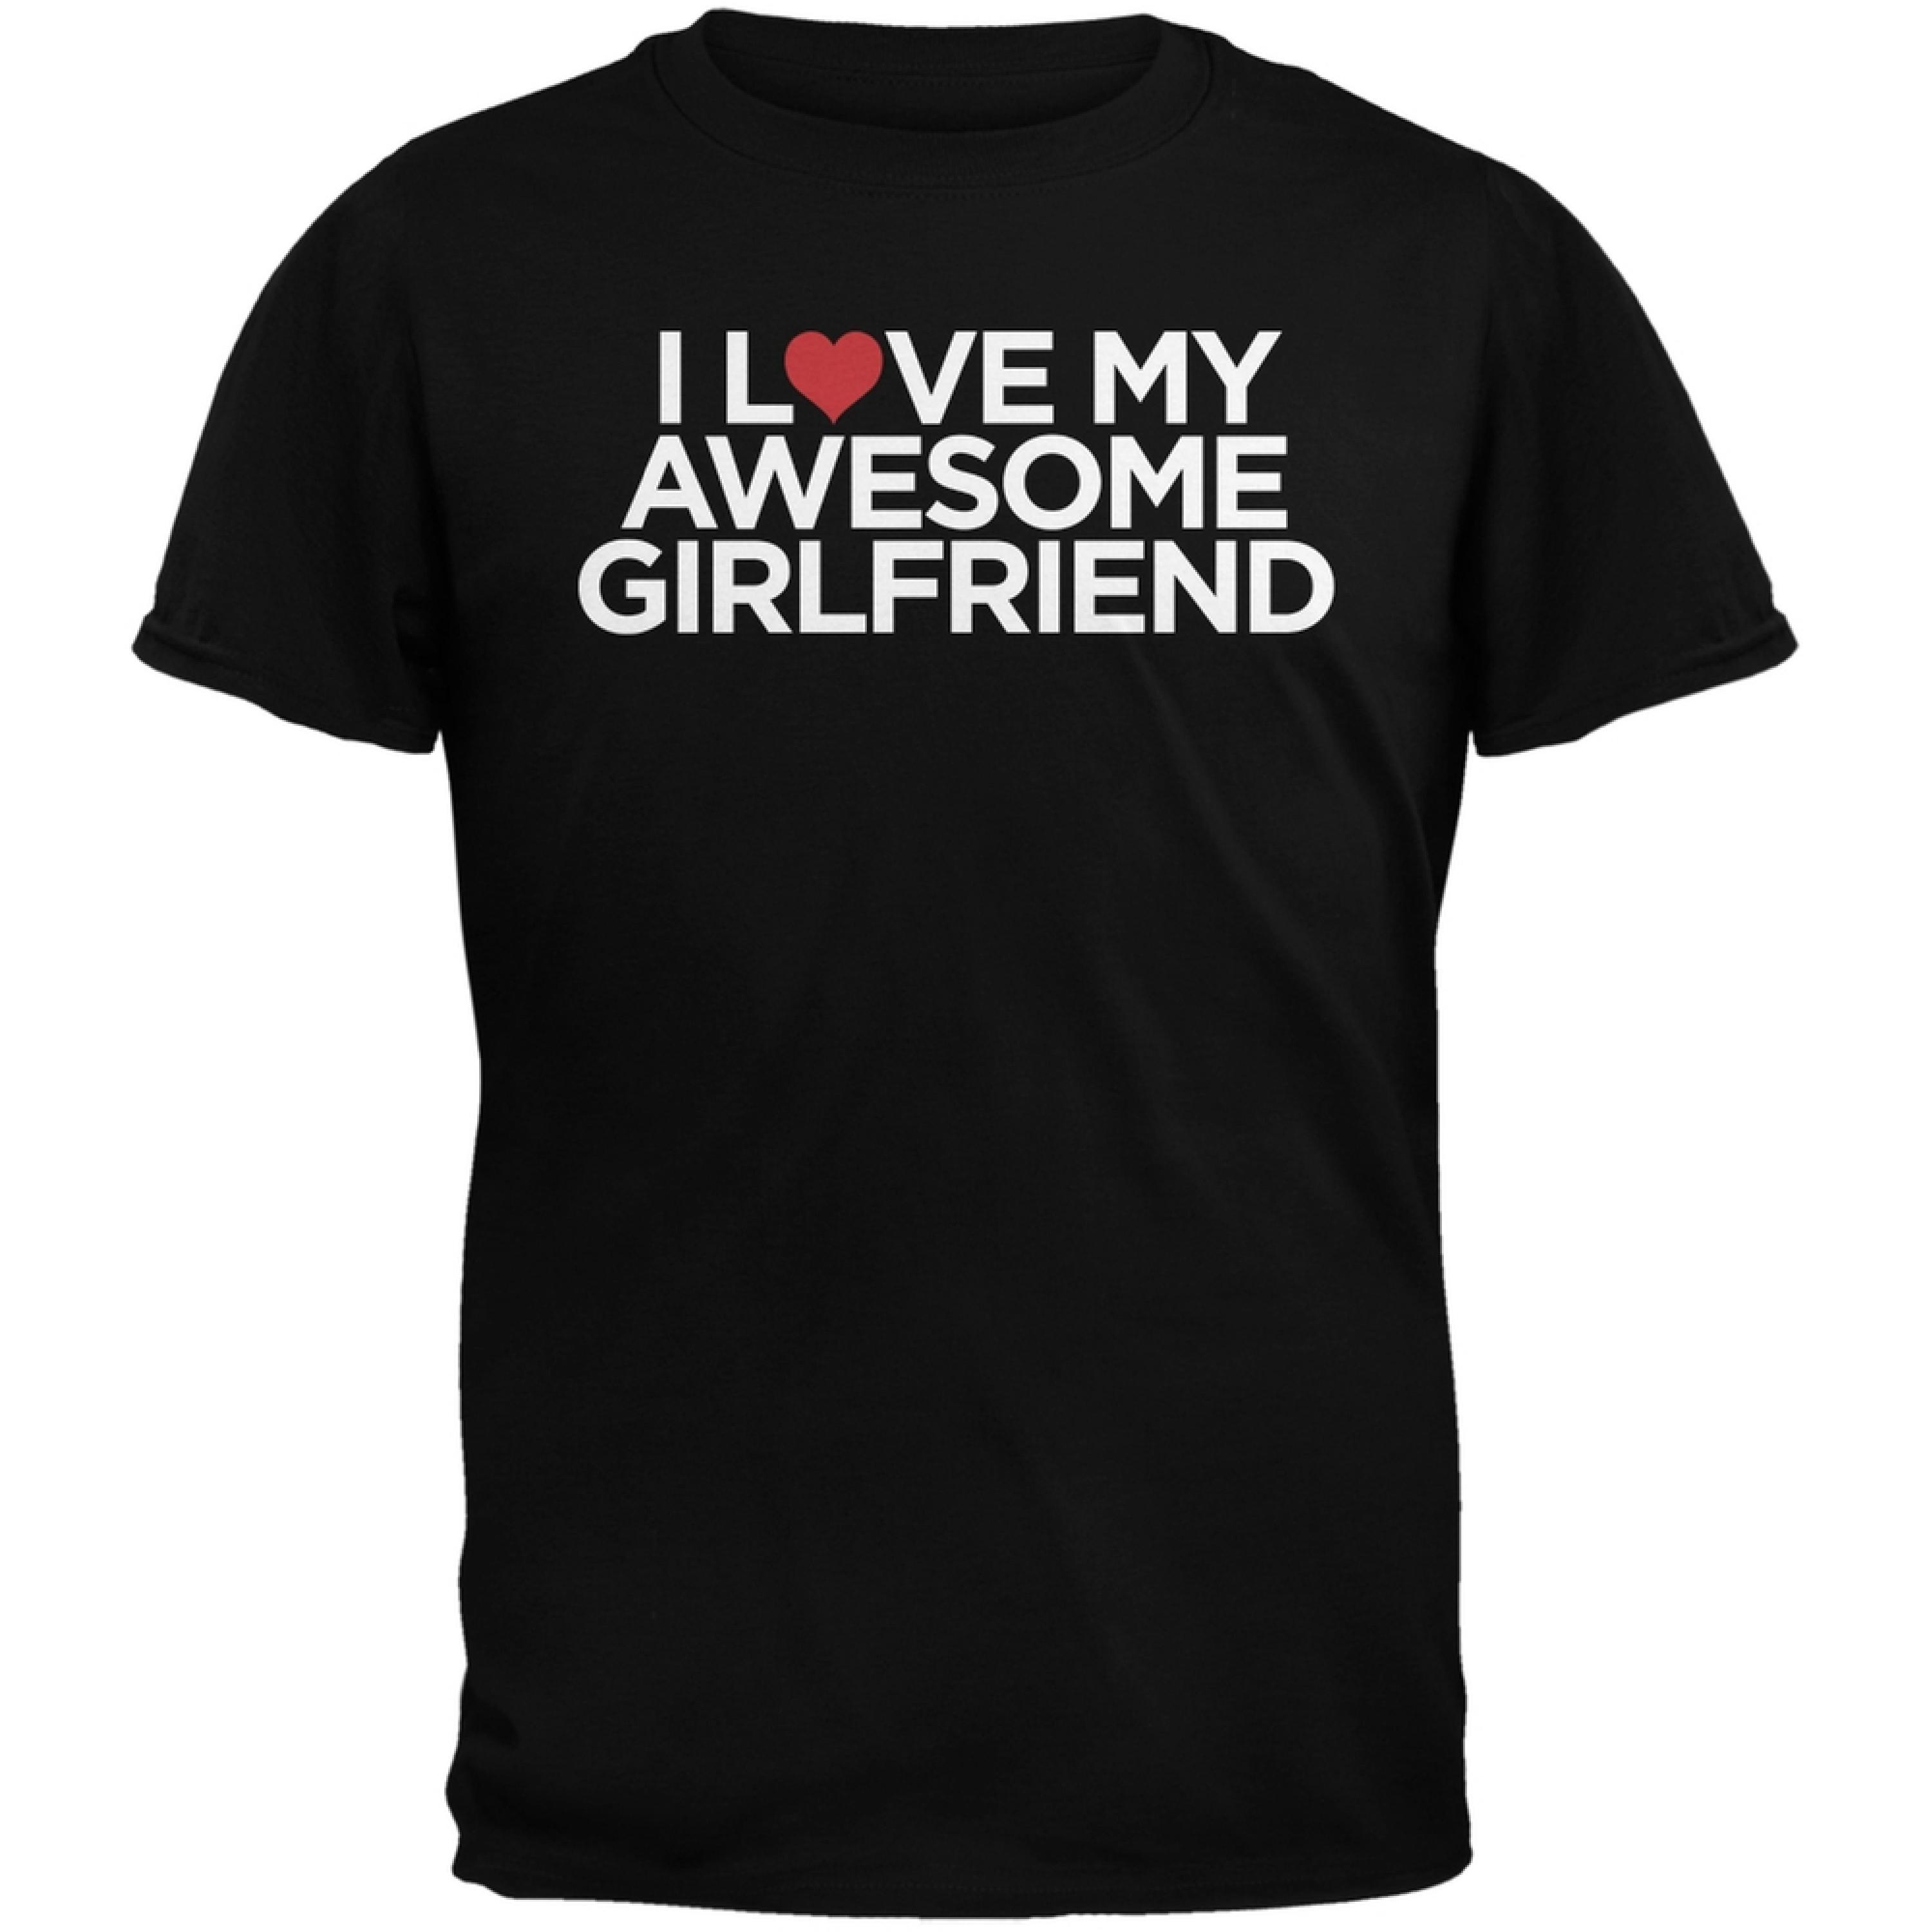 Valentine's Day - I Love My Awesome Girlfriend Black Adult T-Shirt